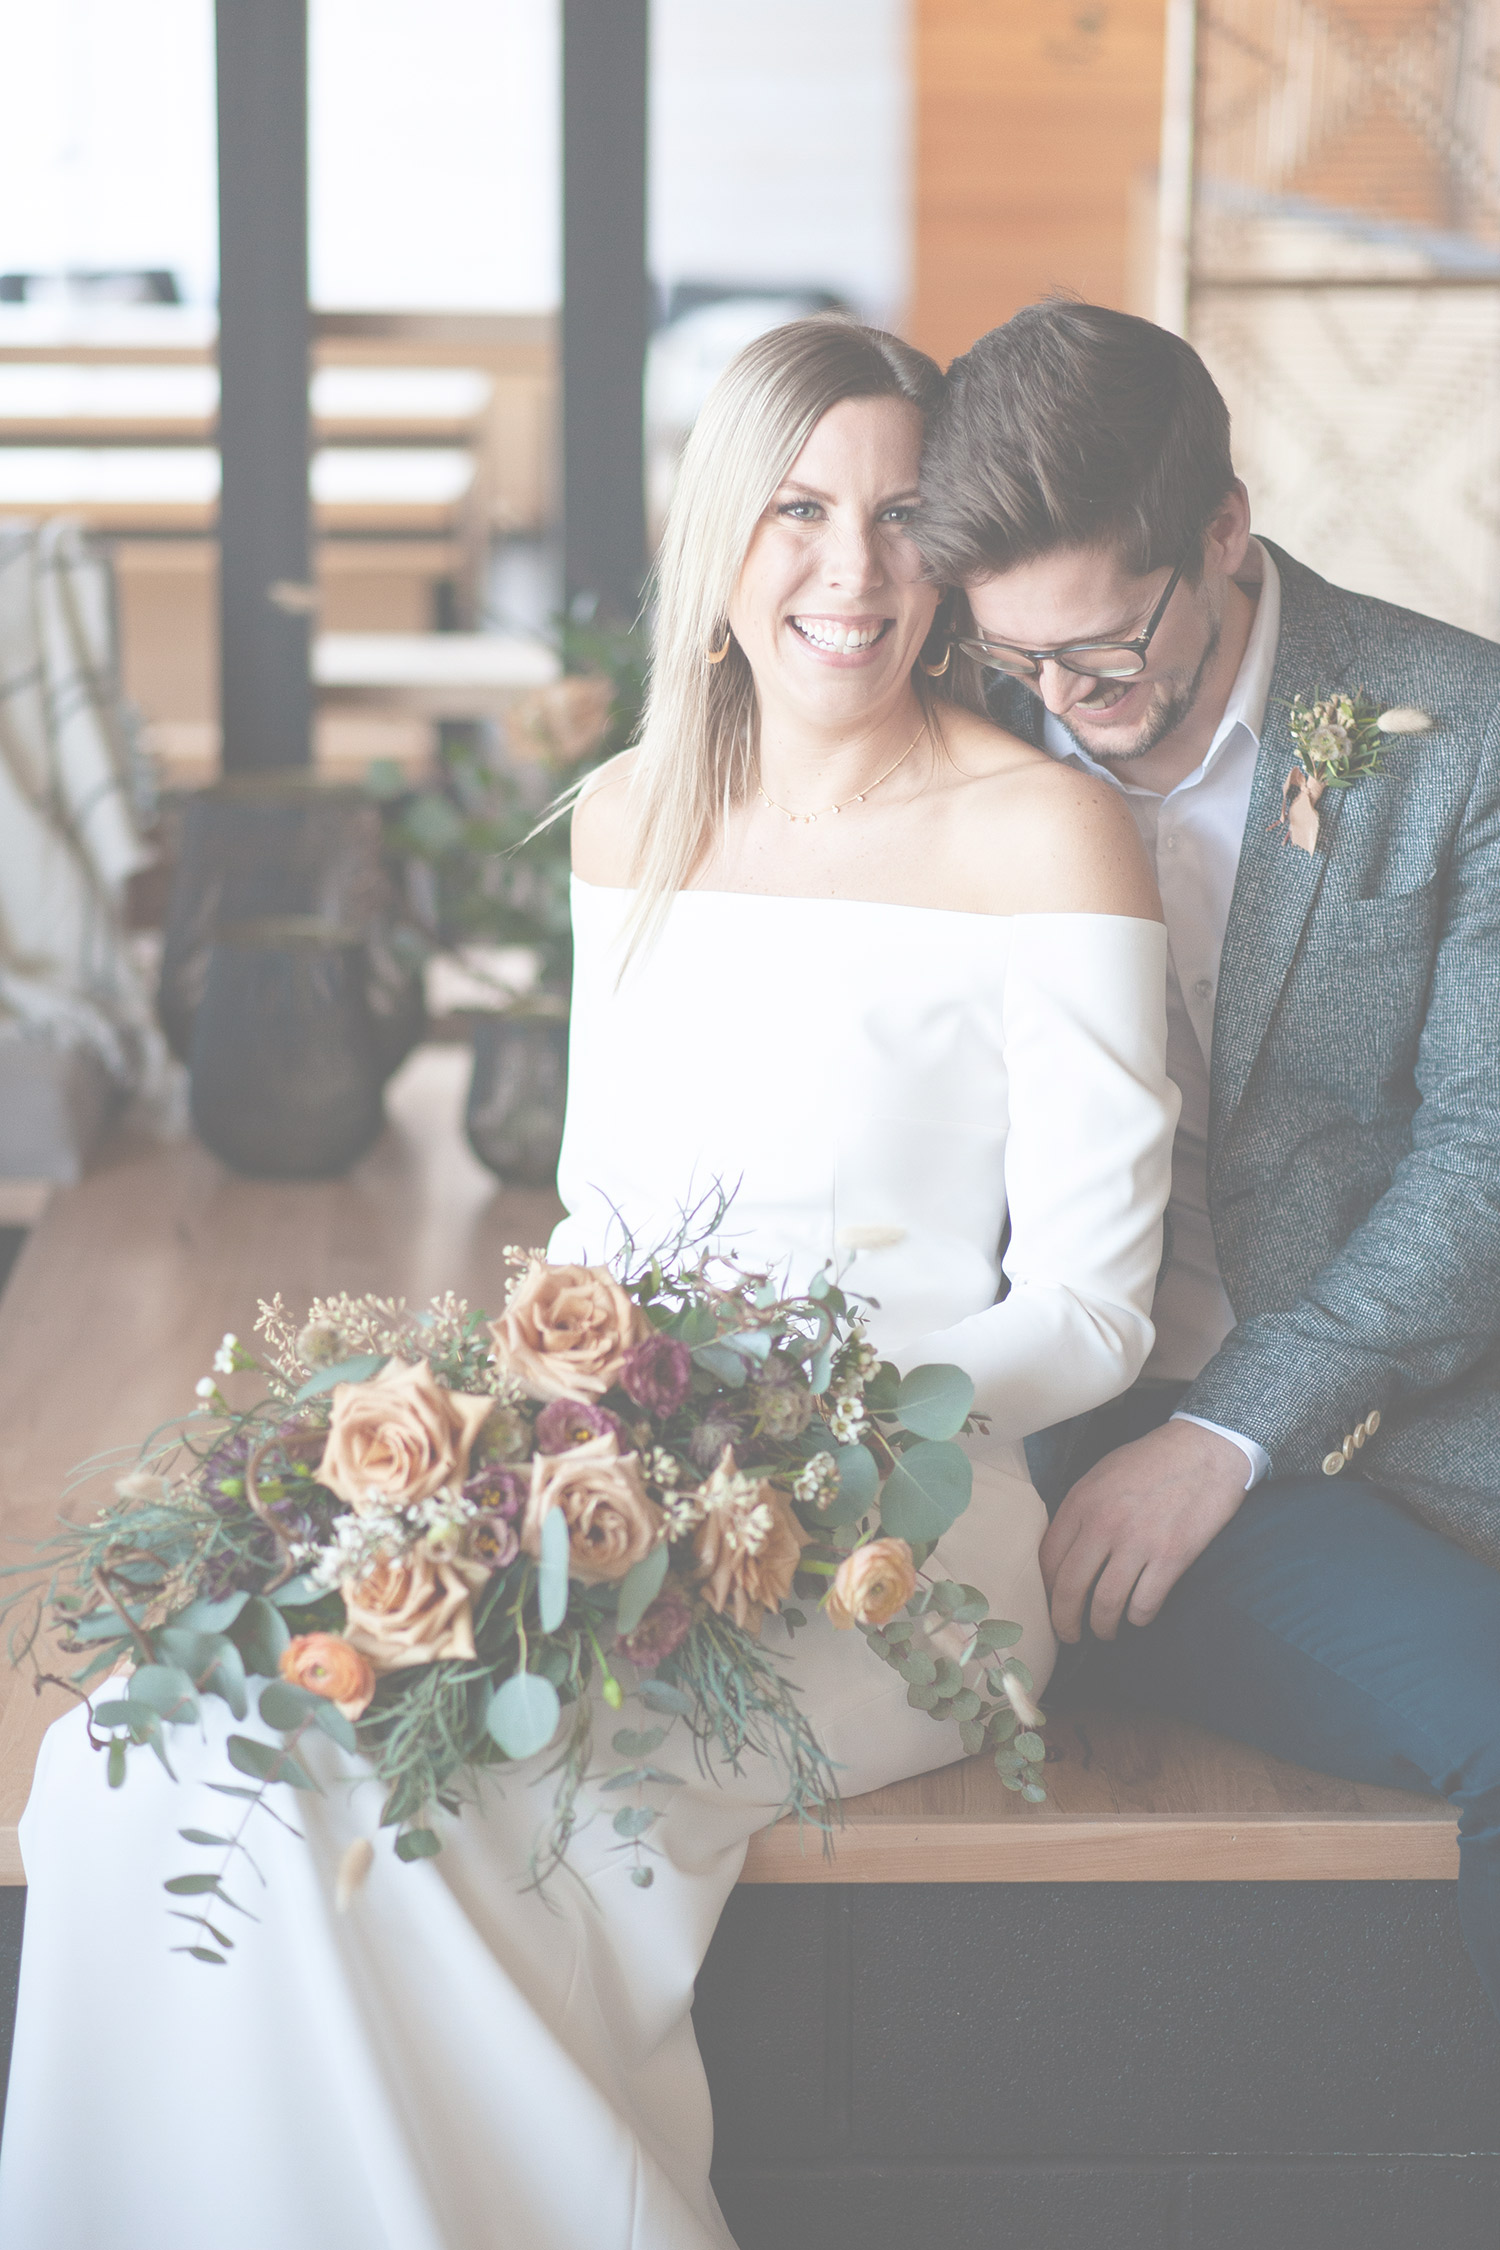 Joy curated elopements photographed by Tara Whittaker Photography